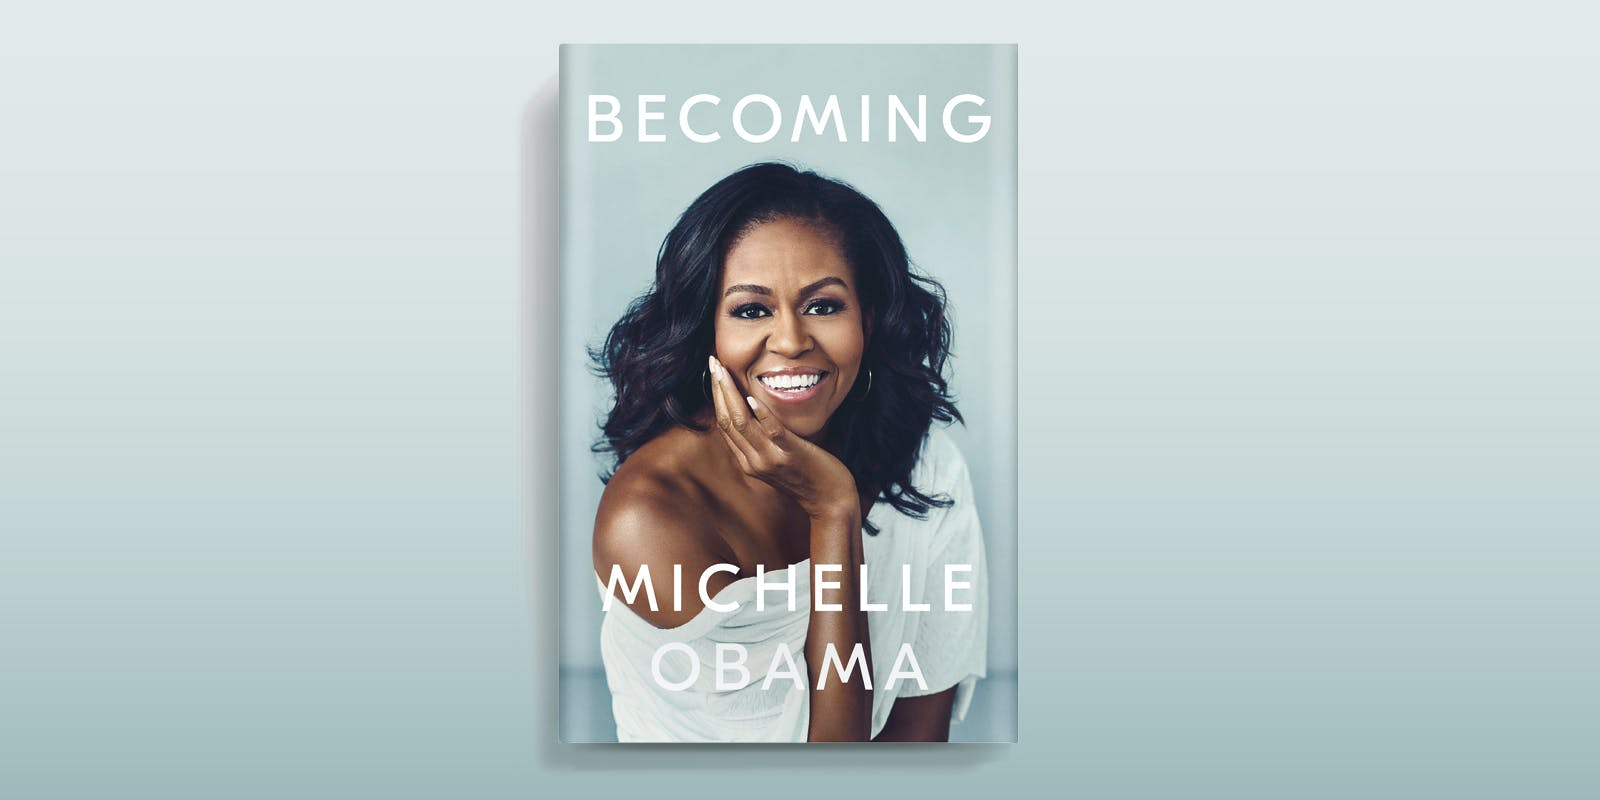 5 inspiring things we learn about Michelle Obama in Becoming